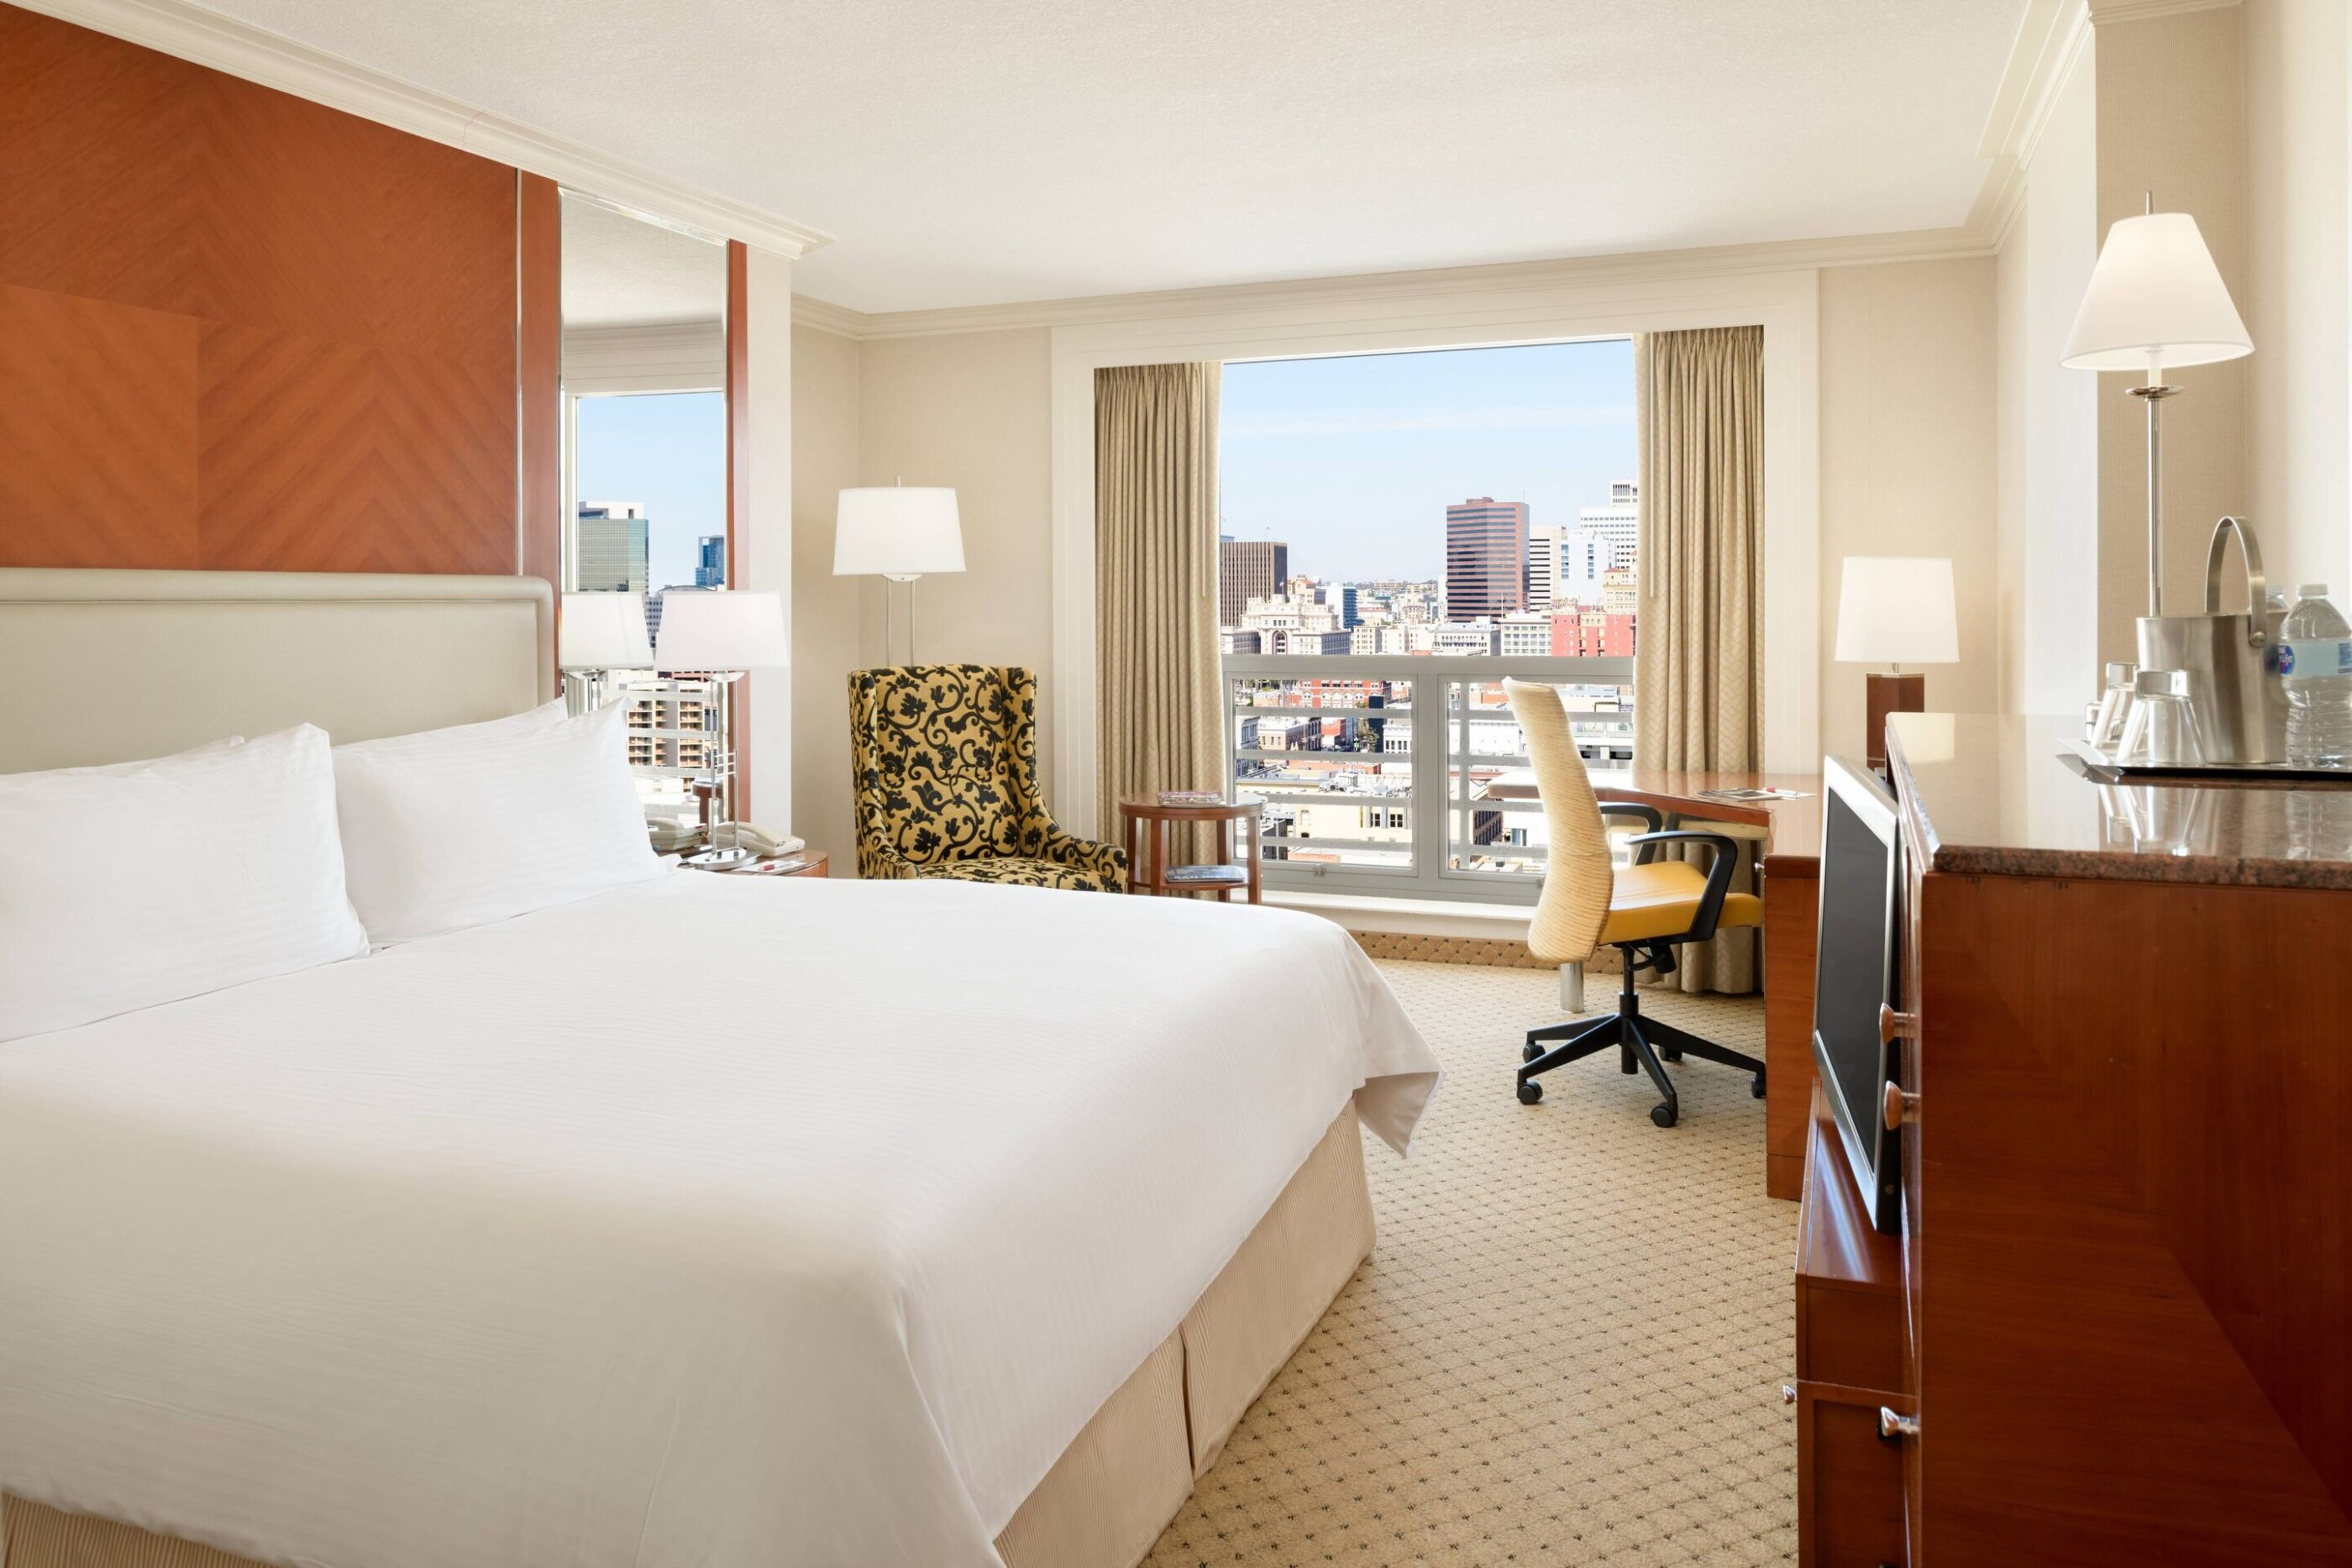 San Diego Marriott Gaslamp king room interior with a city view.